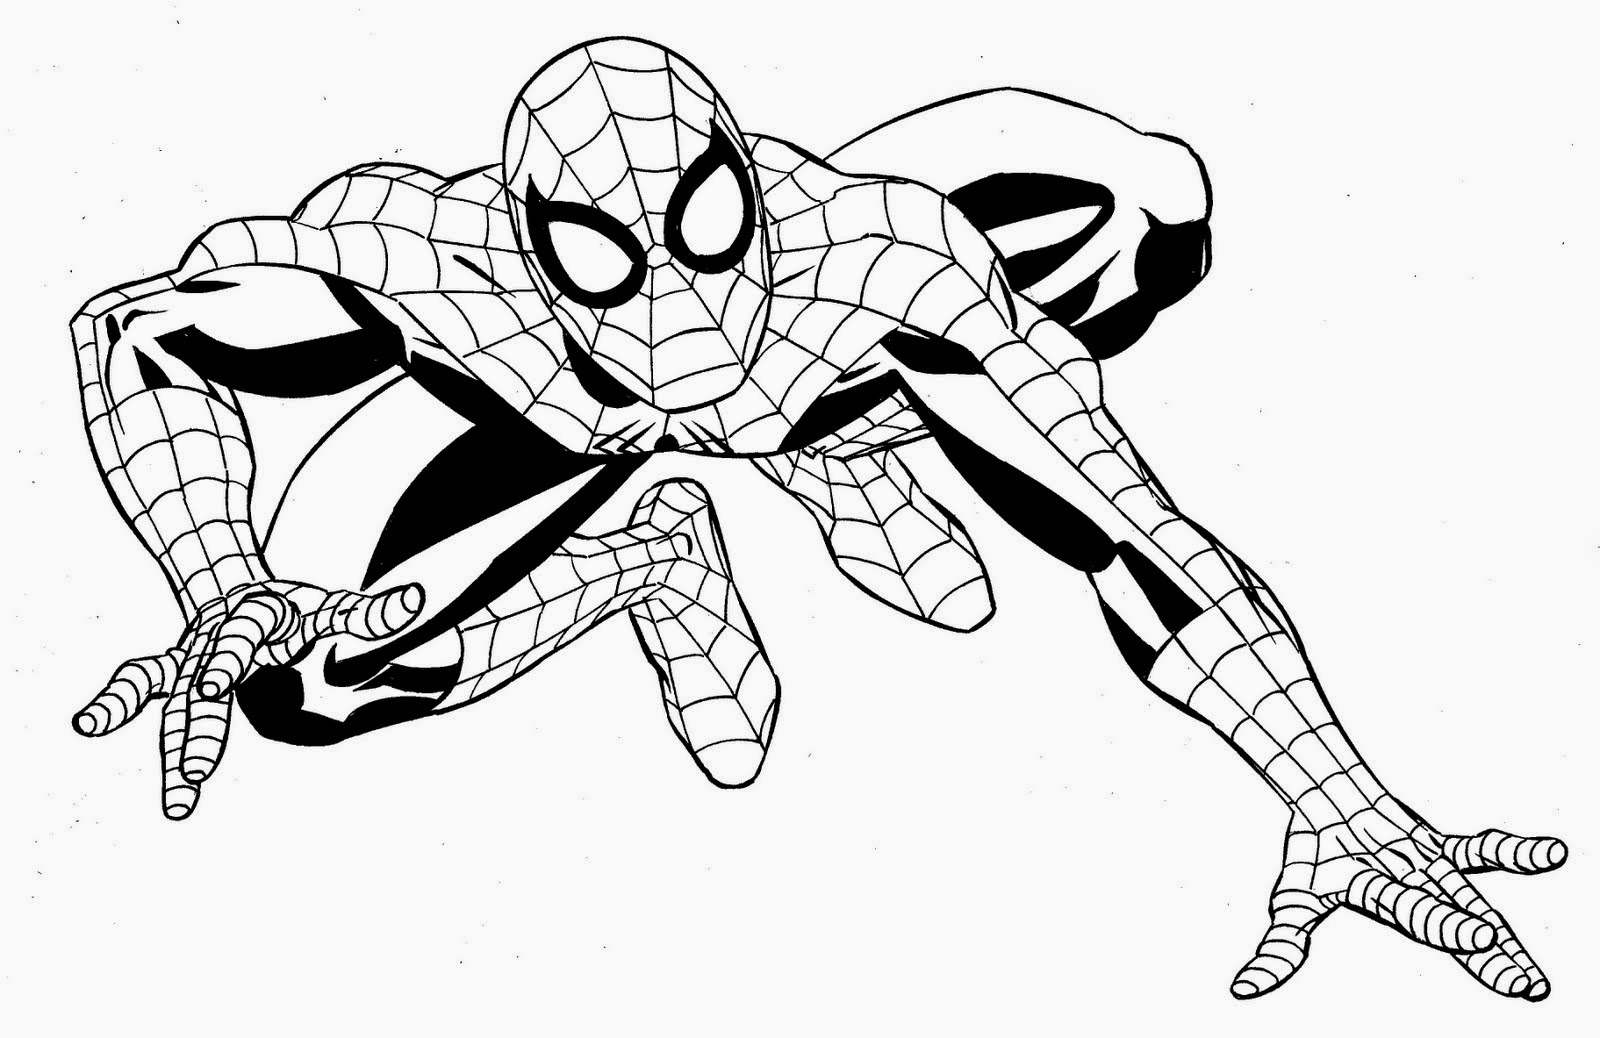 coloring pages superheroes superhero coloring pages to download and print for free superheroes coloring pages